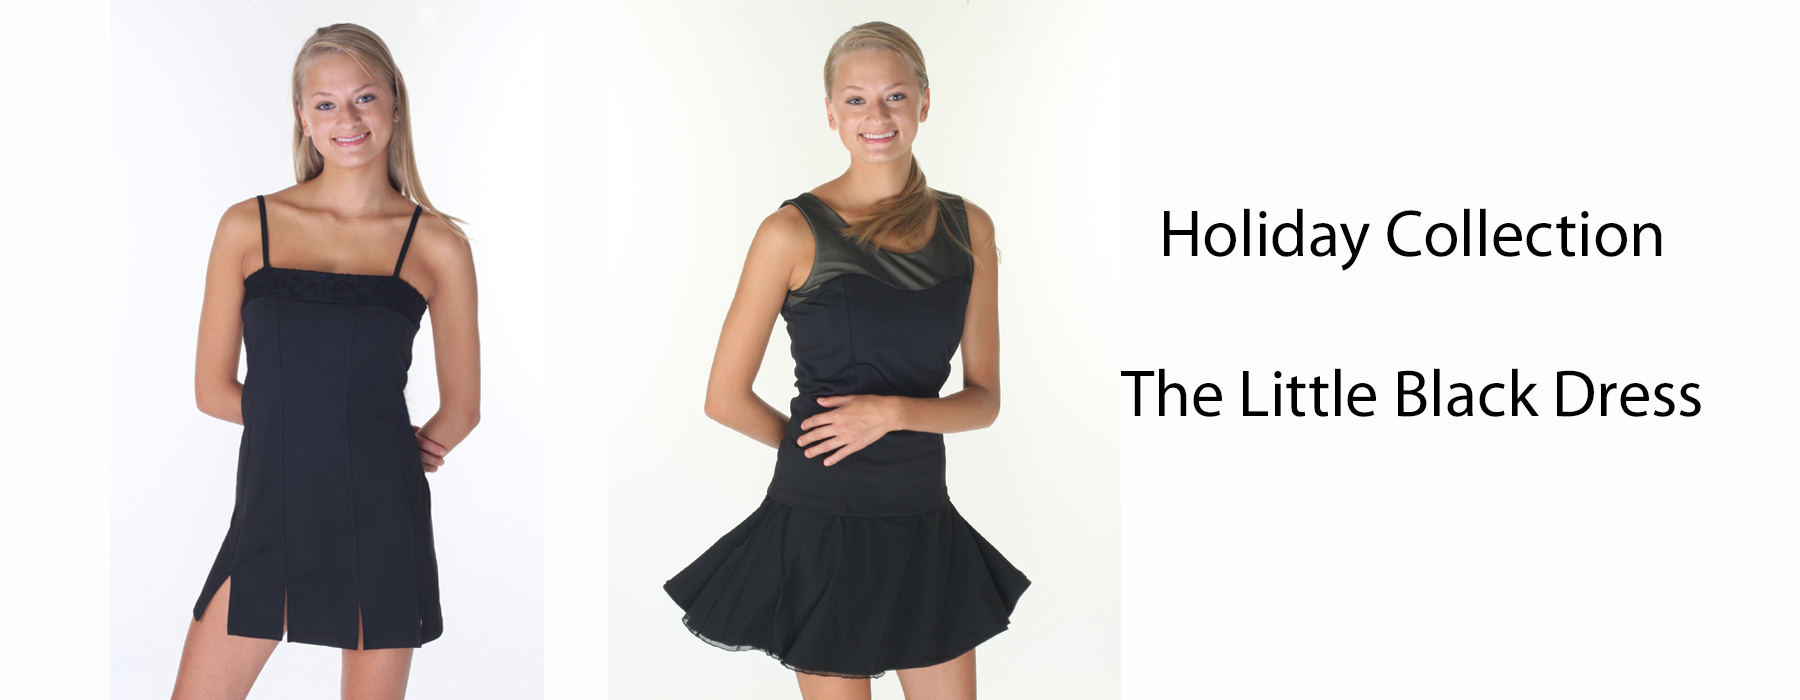 holiday-the-little-black-dress.jpg